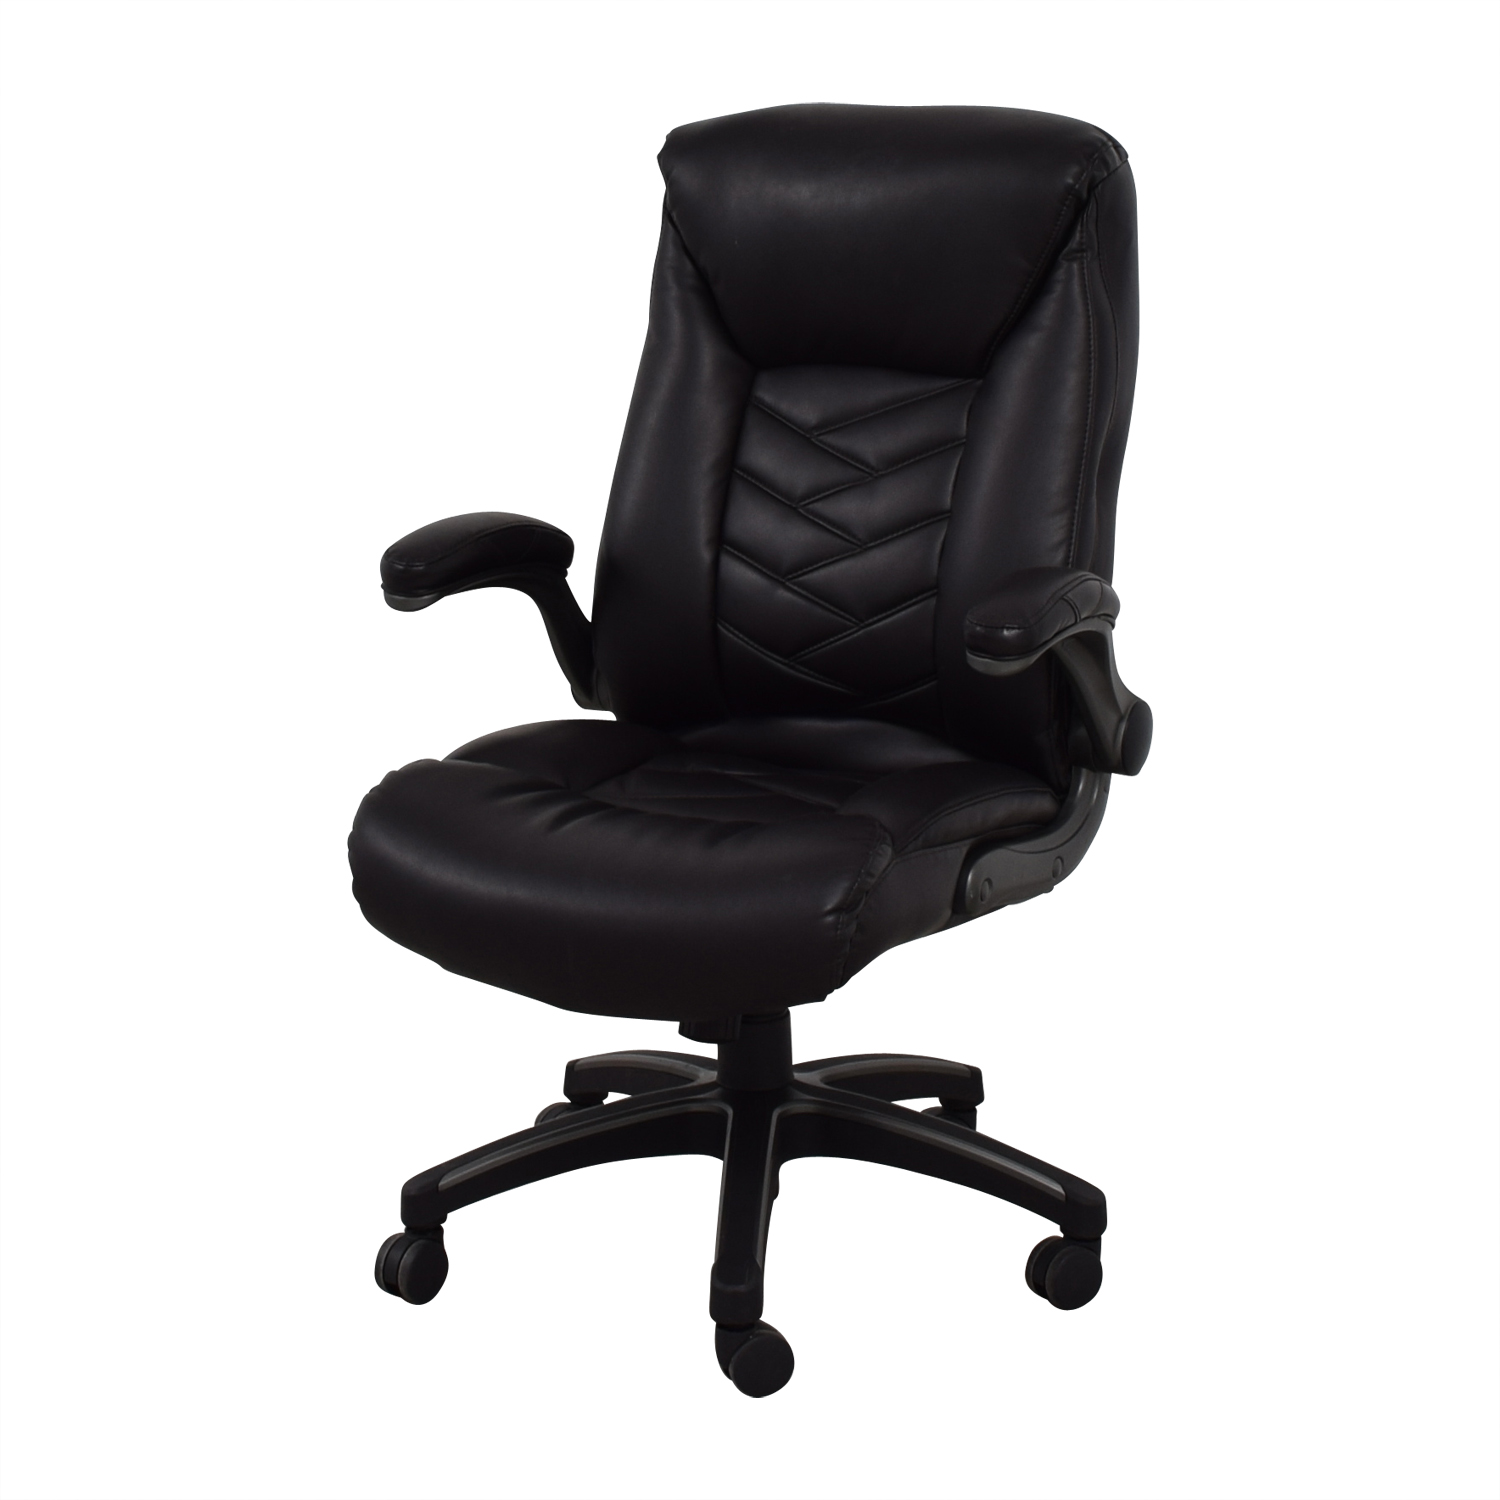 90 off black leather office chair chairs for Home office chairs leather